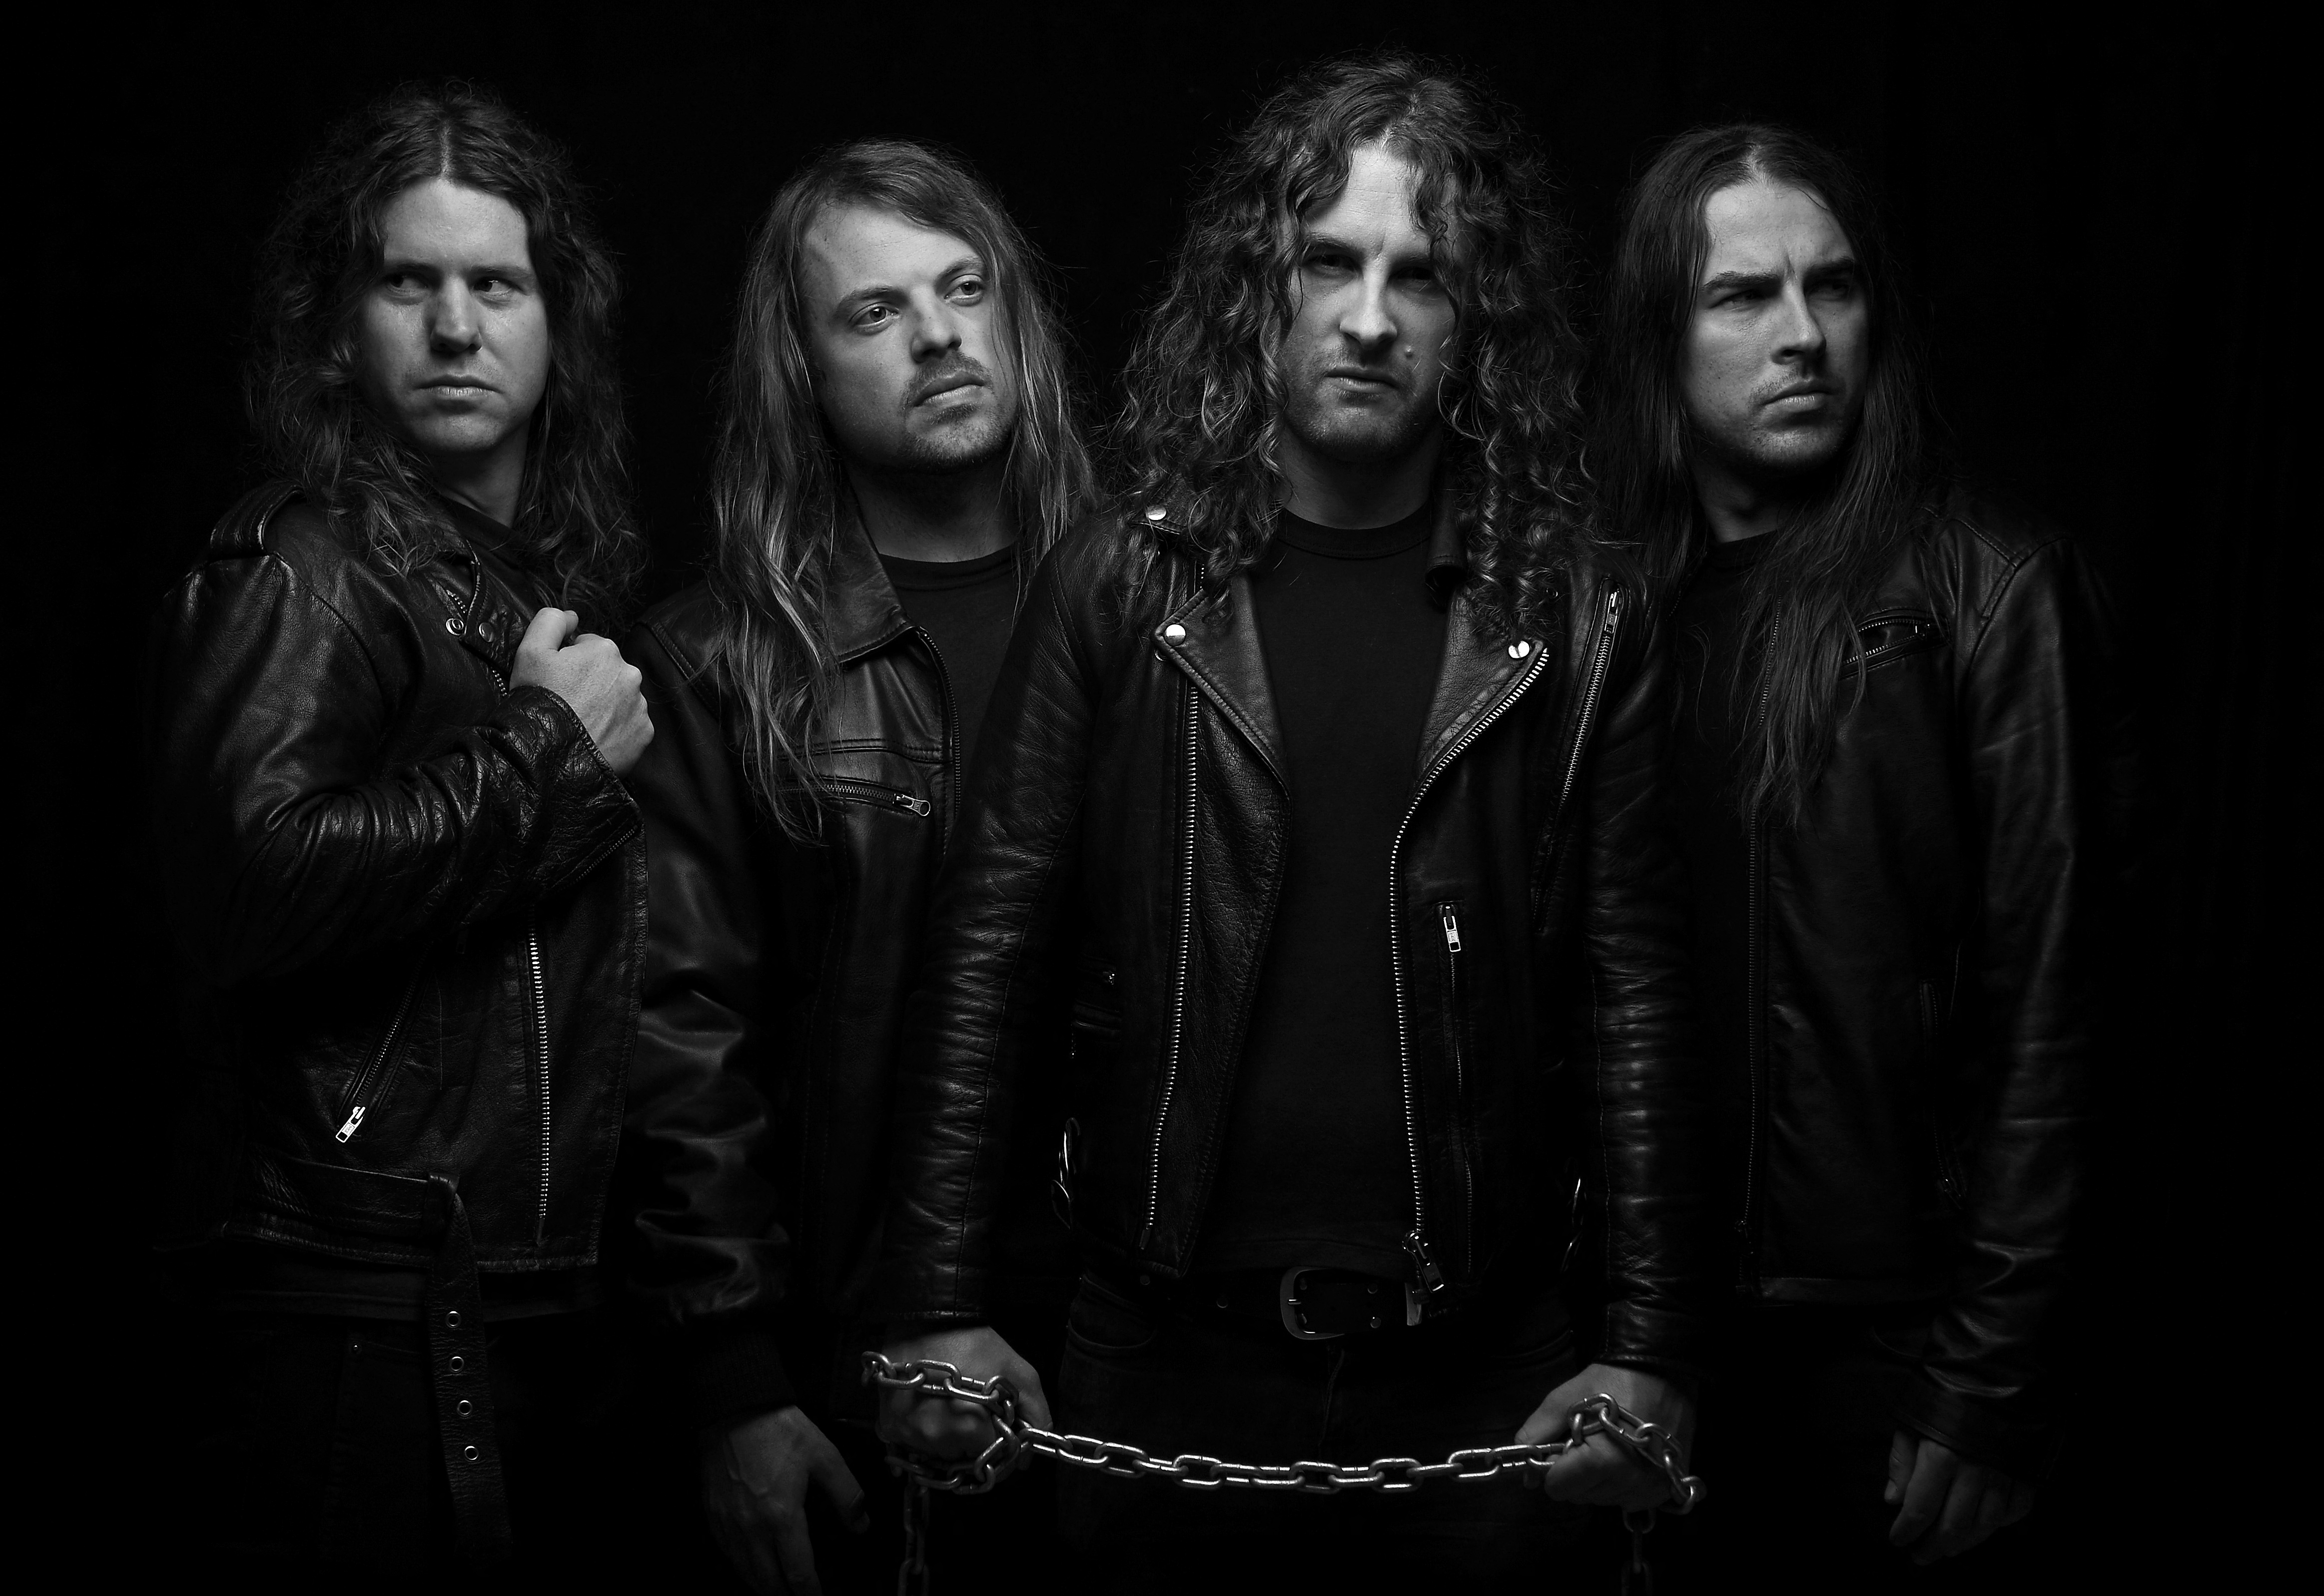 AIRBOURNE ANNOUNCE HEADLINE UK TOUR DATES FOR NOVEMBER 2016